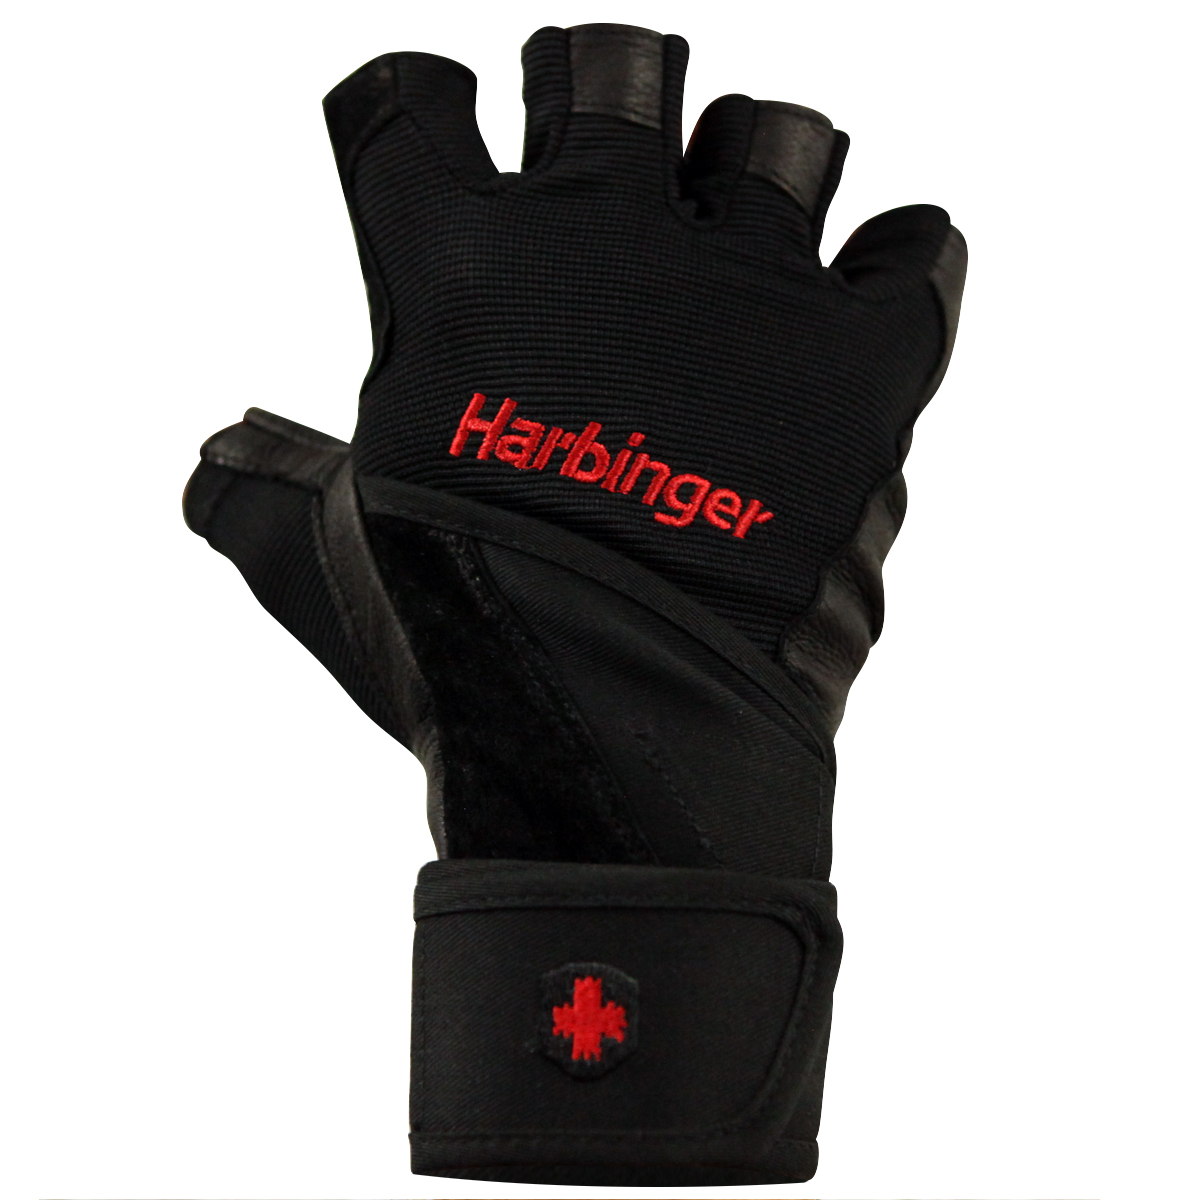 Harbinger-140-Ventilated-Pro-Wristwrap-Weight-Lifting-Gloves-Black